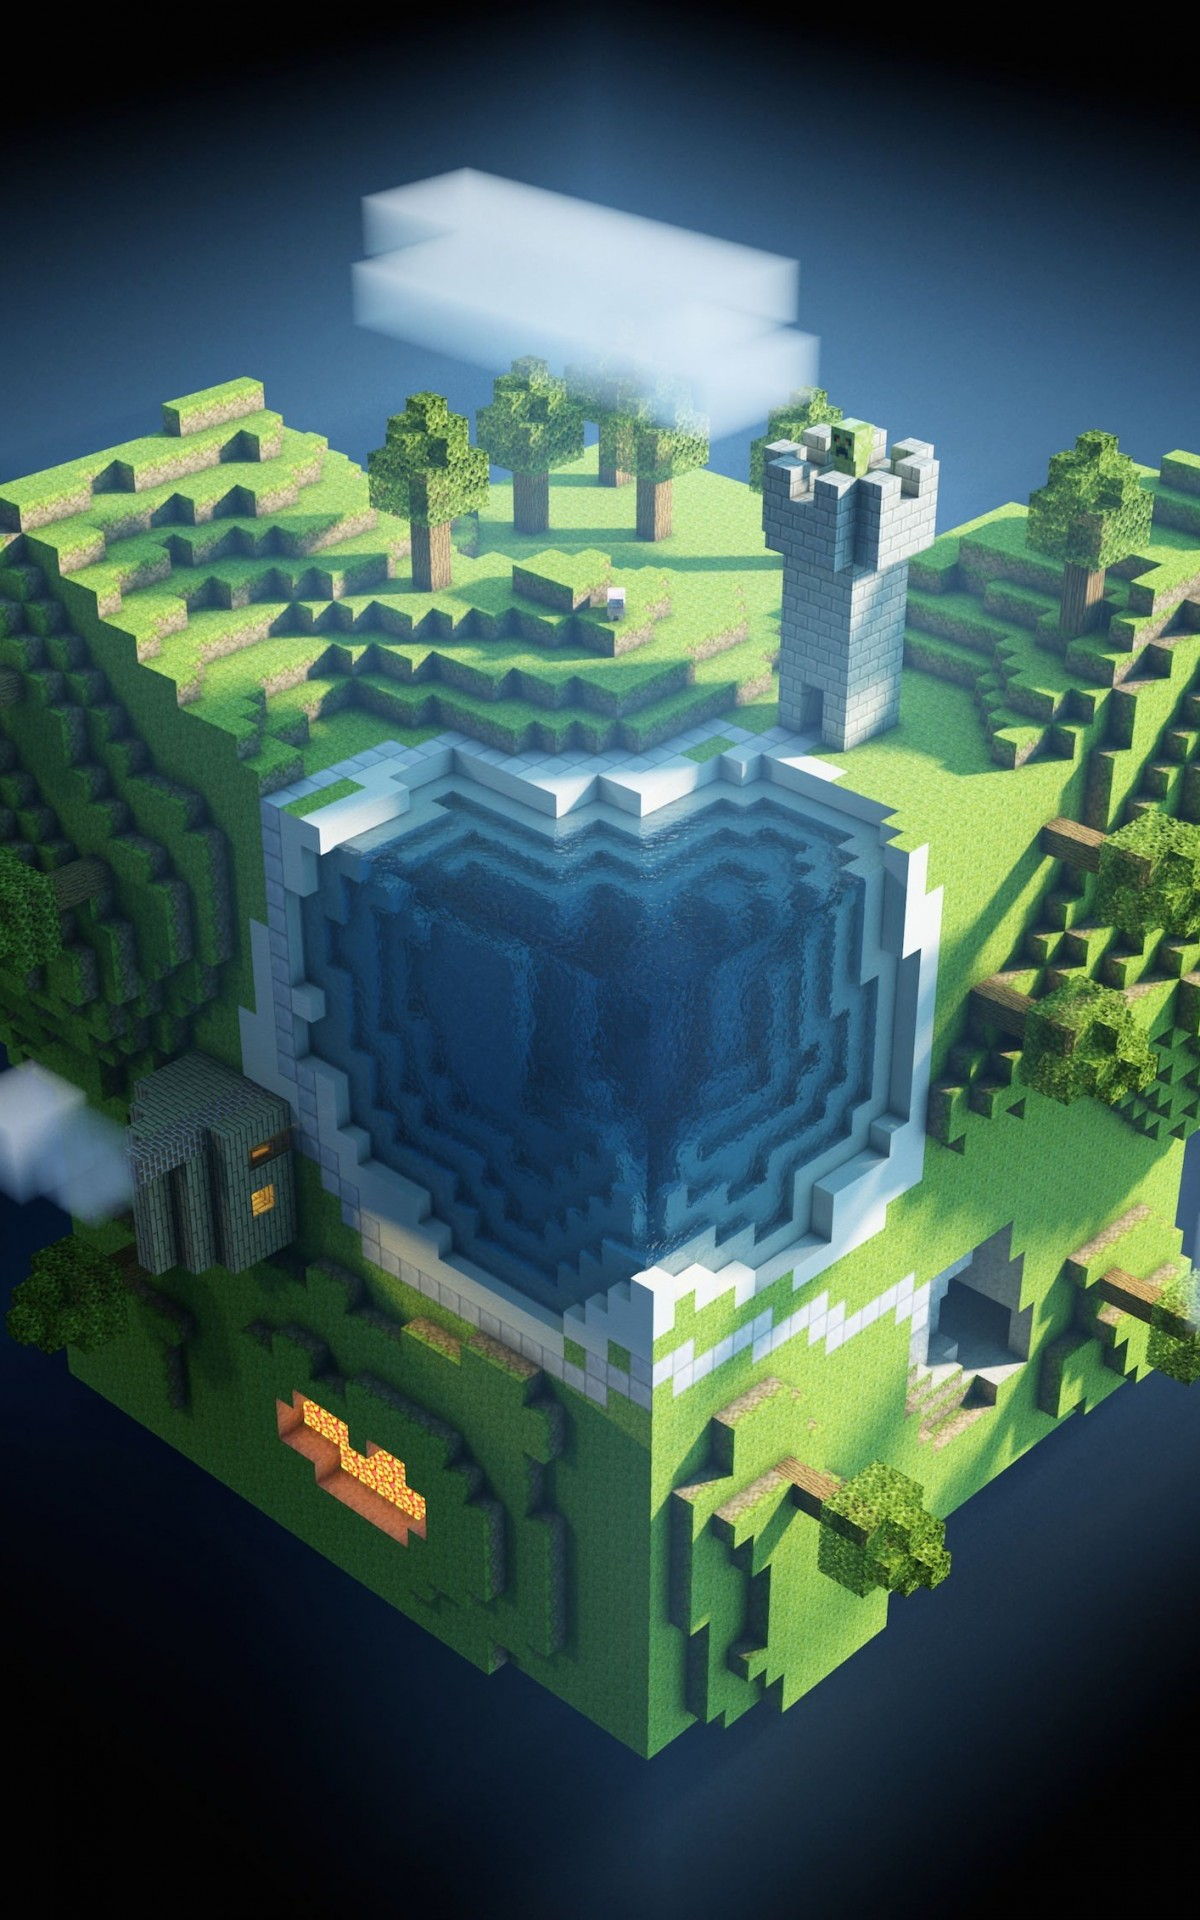 Planet Minecraft Wallpaper for Amazon Kindle Fire HDX